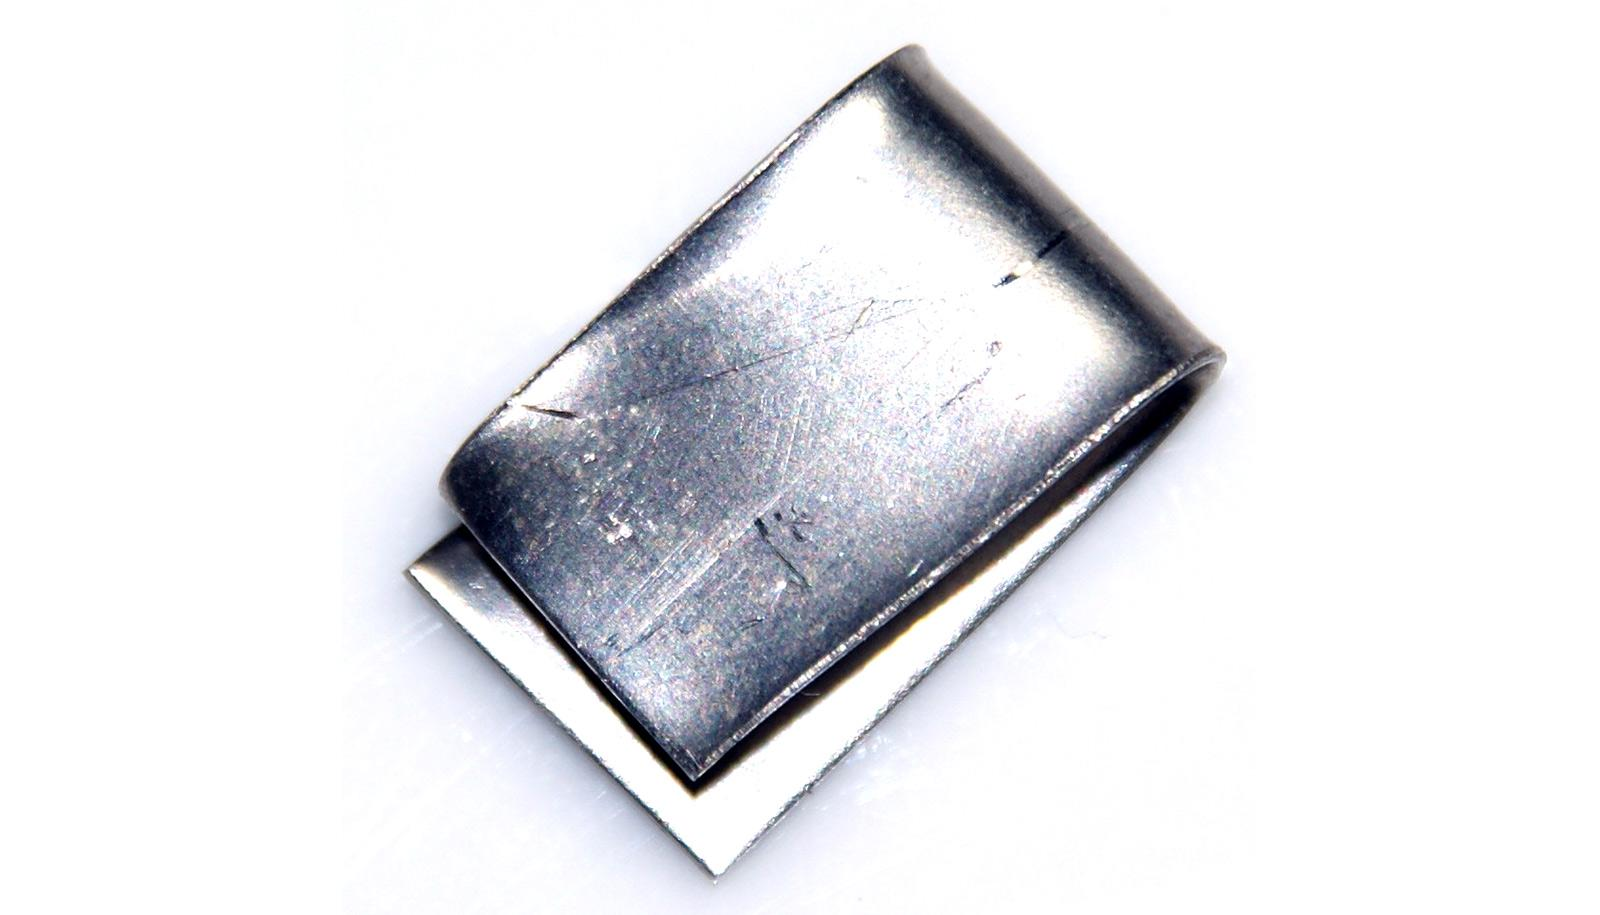 folded sheet of nickel (silver metal) on white